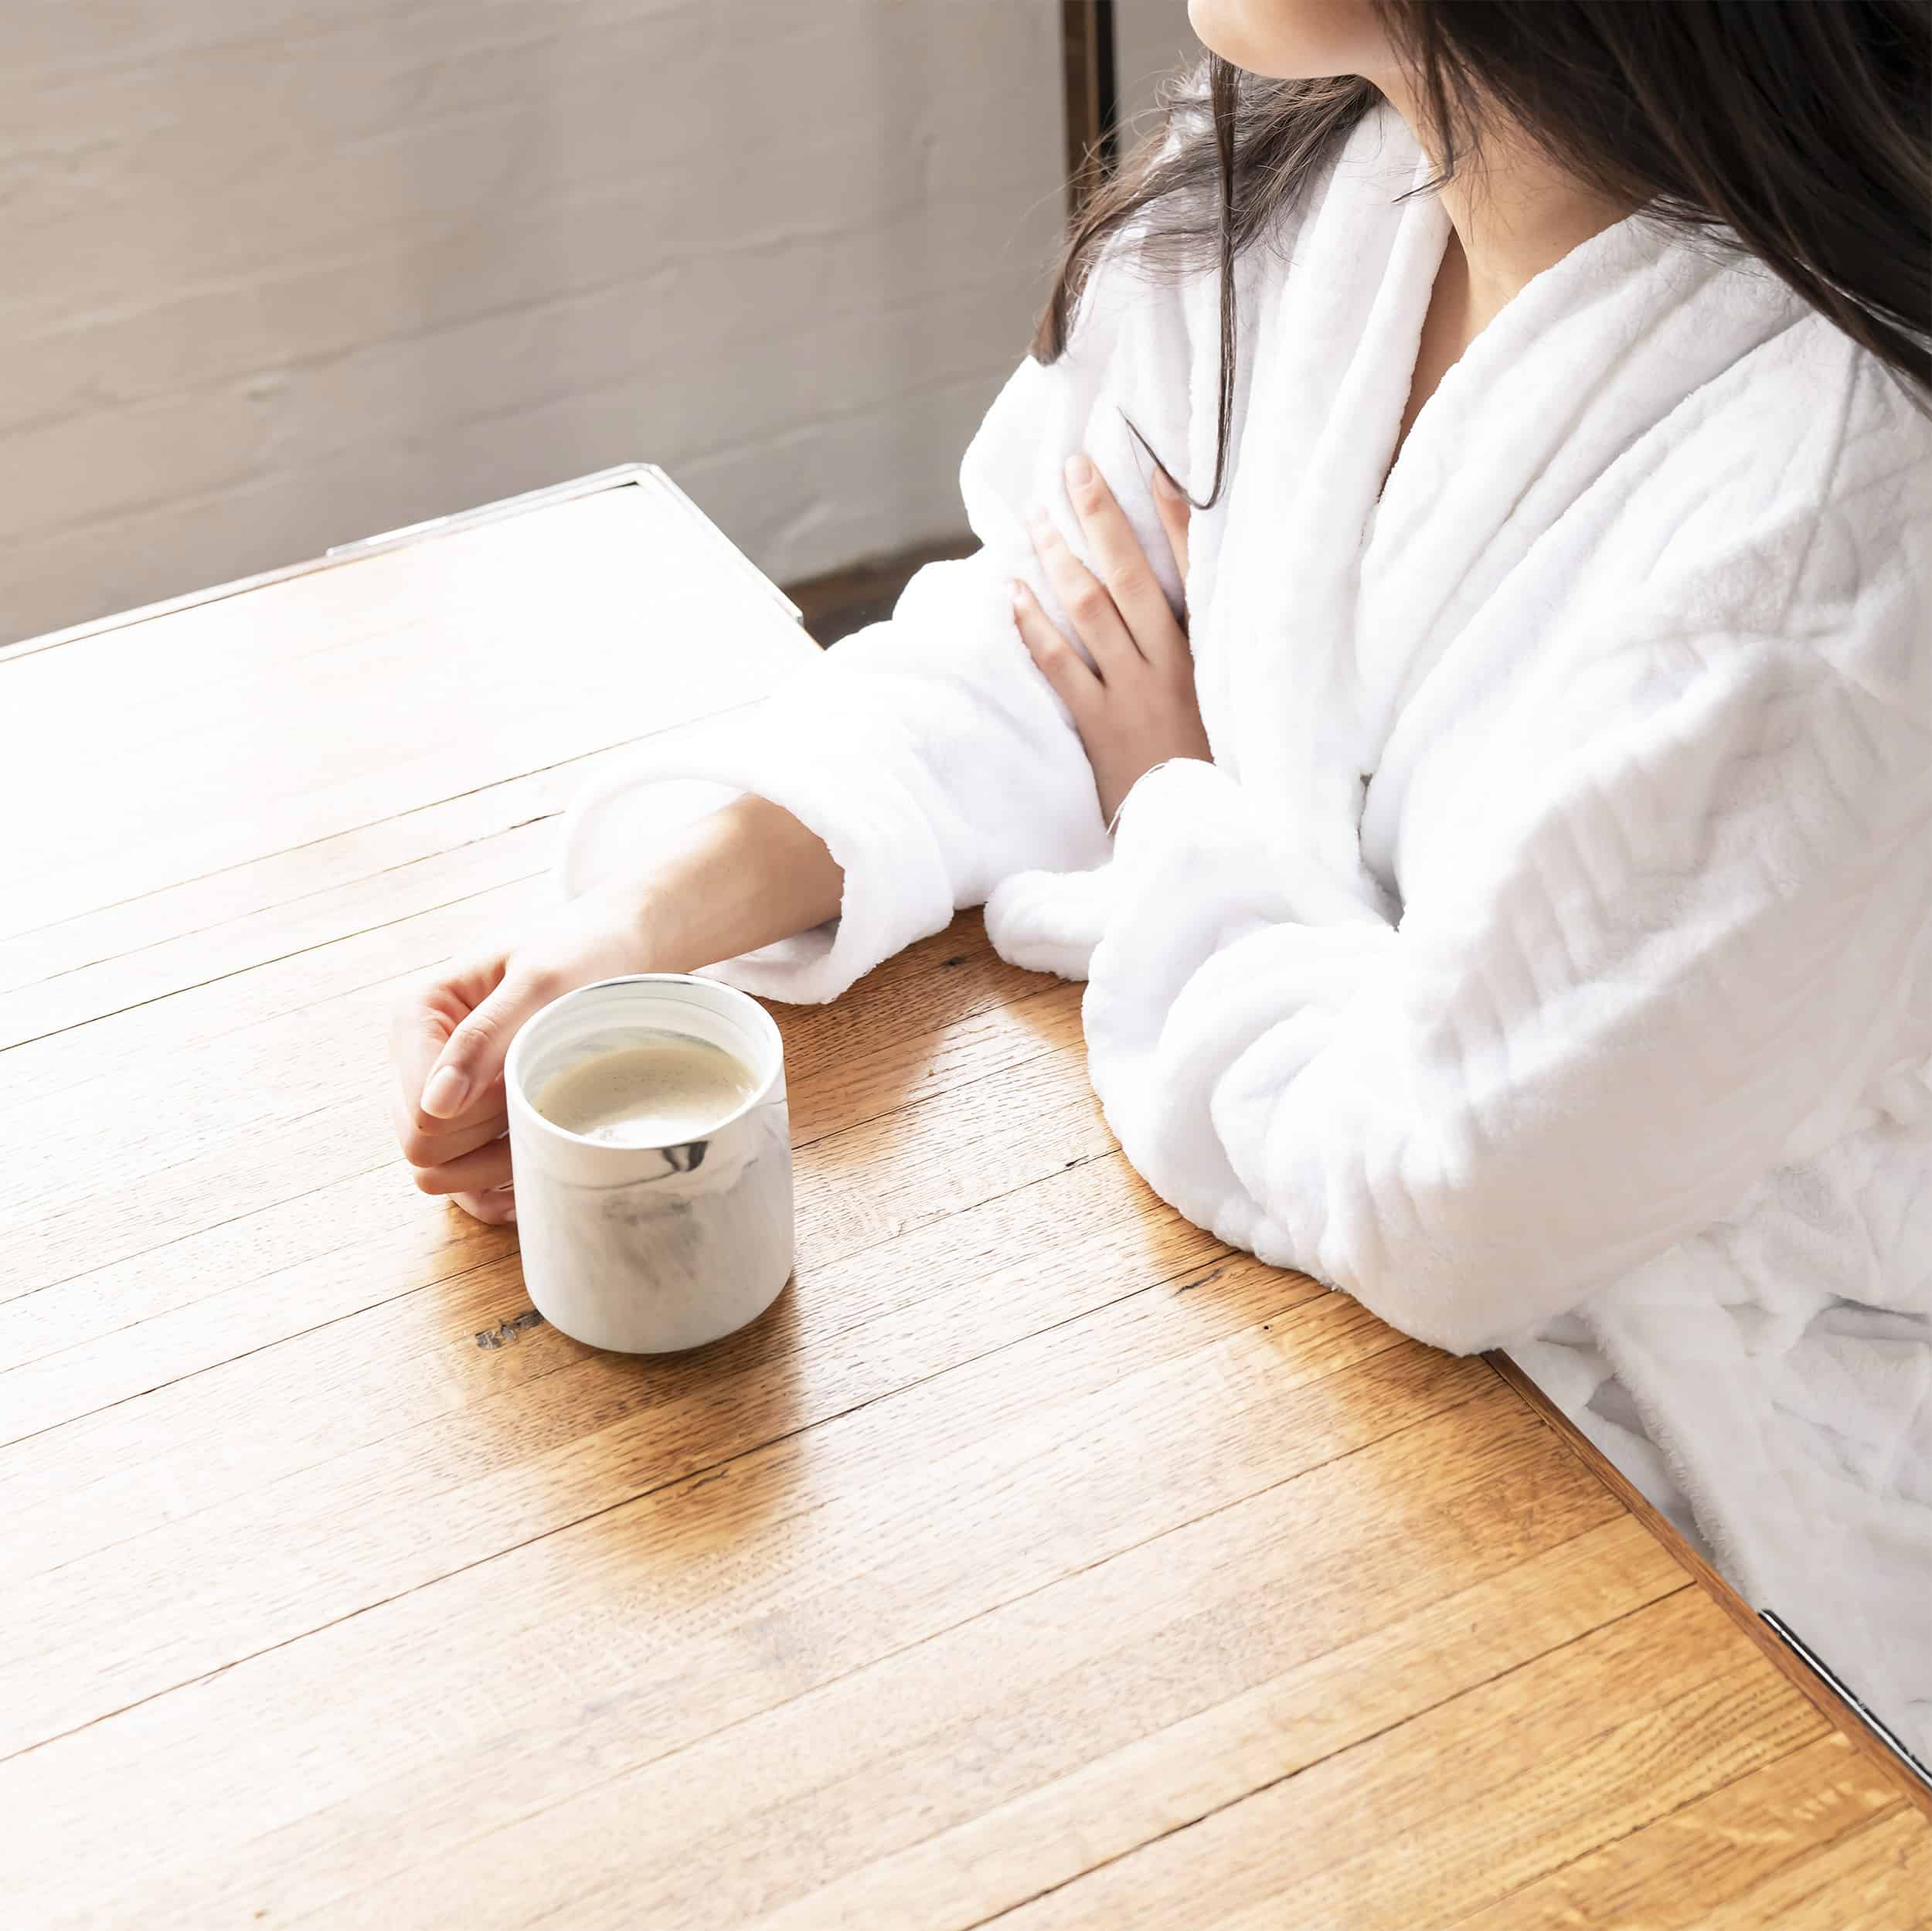 Woman sitting by window with cup of coffee, thinking about financial implications of divorce and whether or not to get a life insurance policy on her ex-spouse